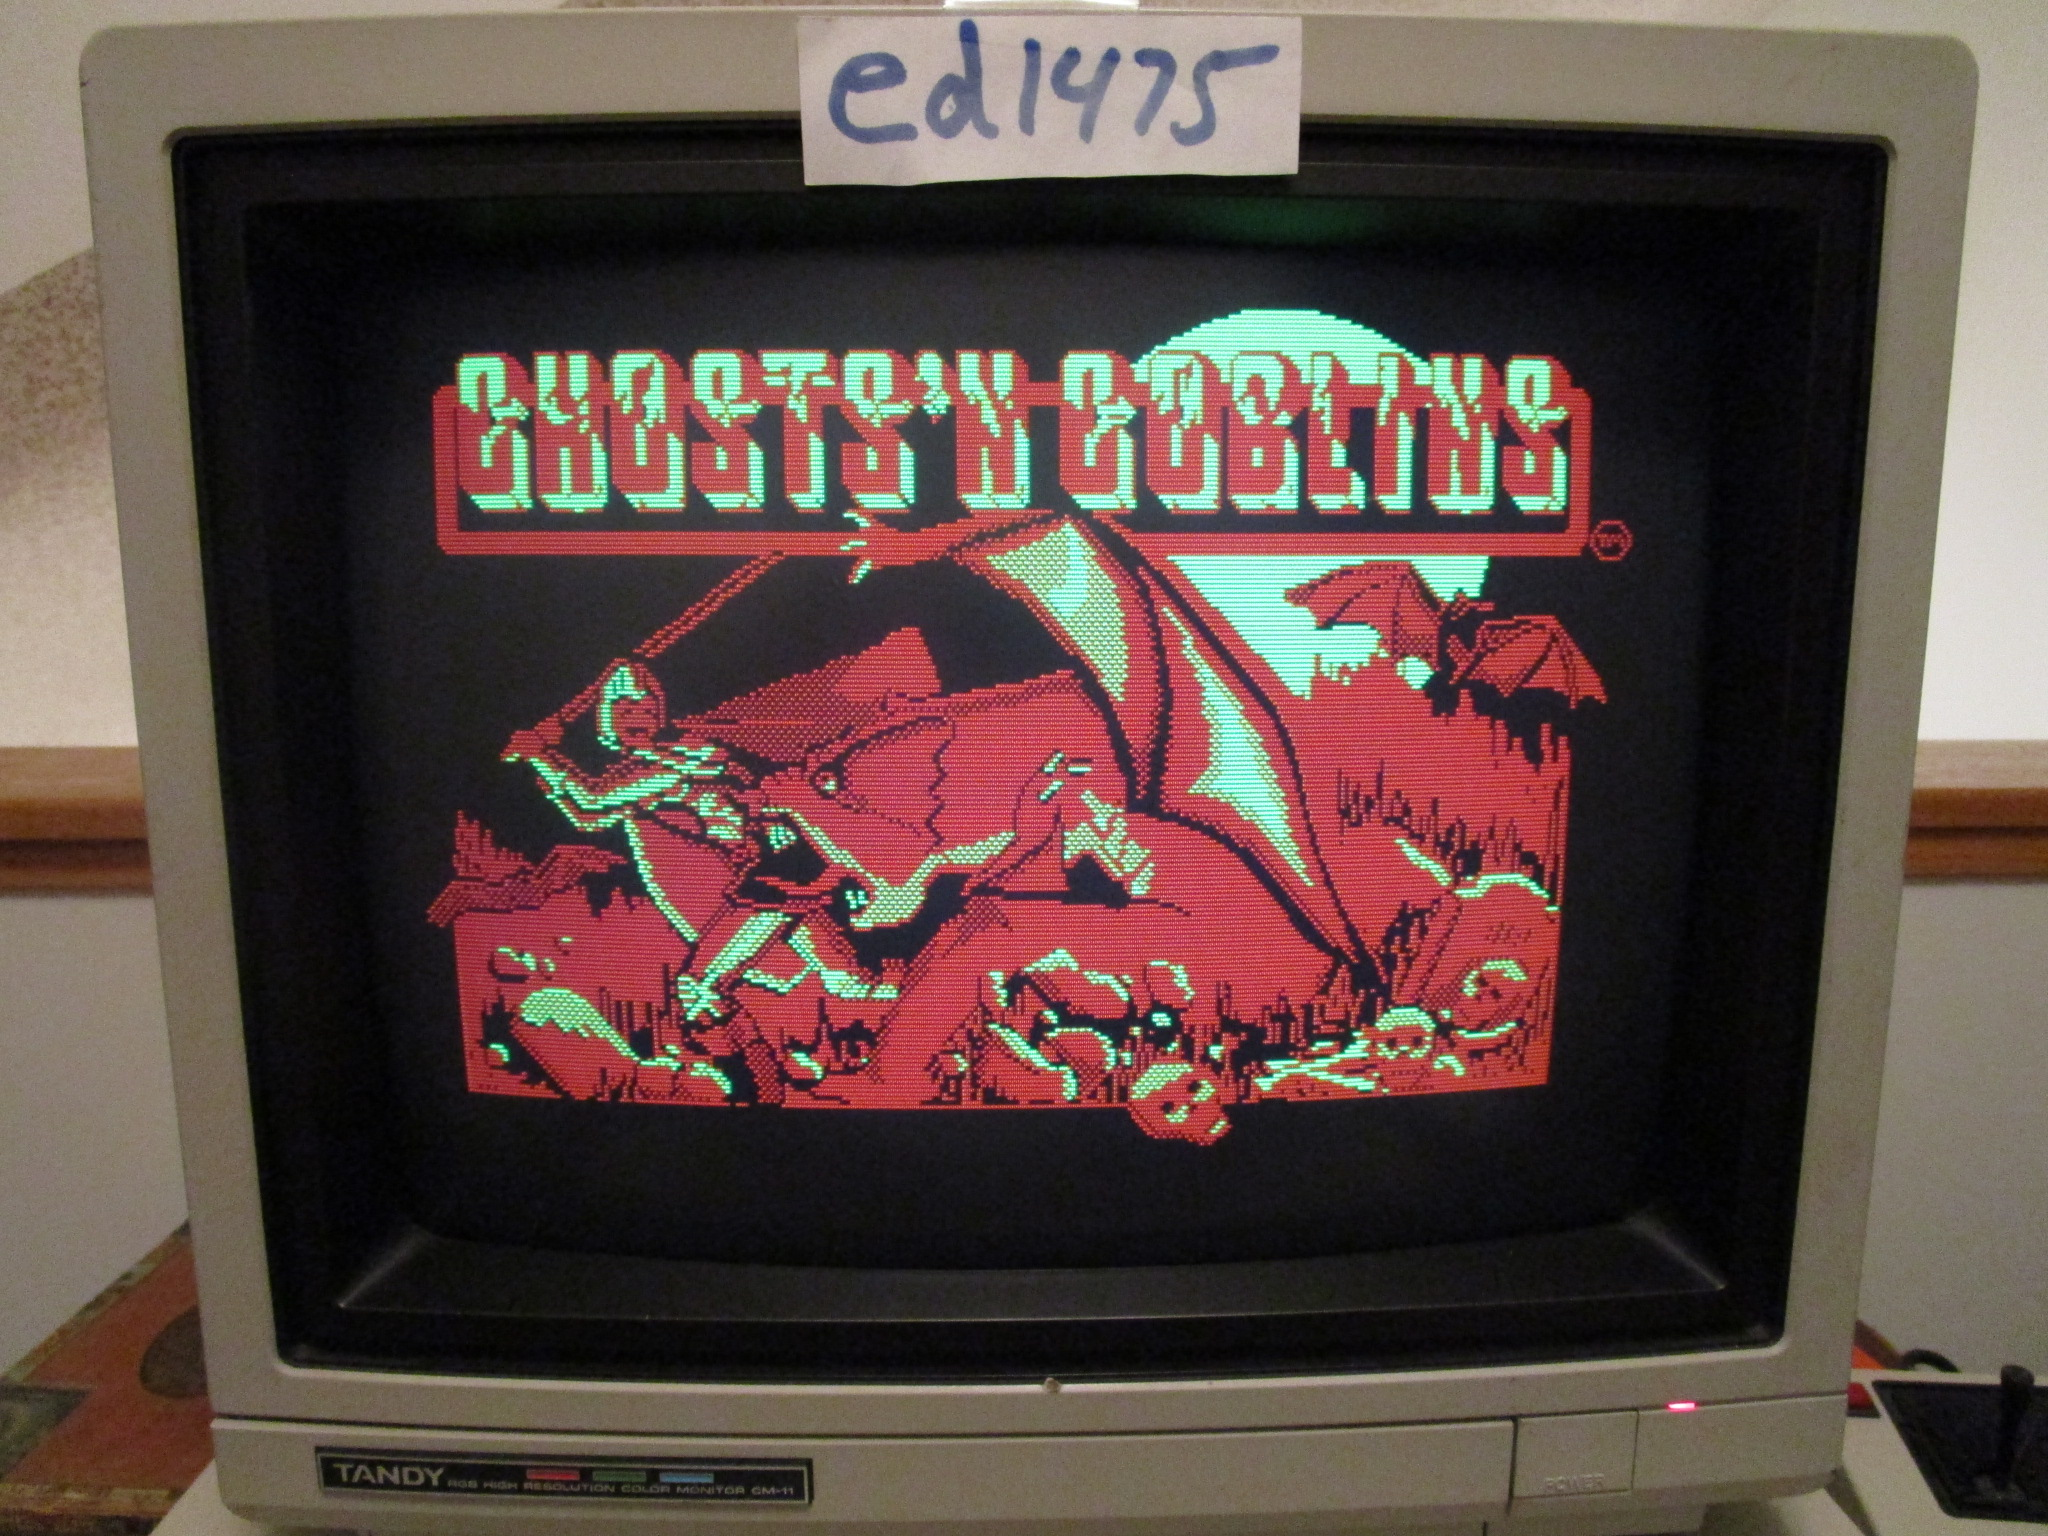 ed1475: Ghosts N Goblins (PC) 4,400 points on 2015-02-01 20:46:44